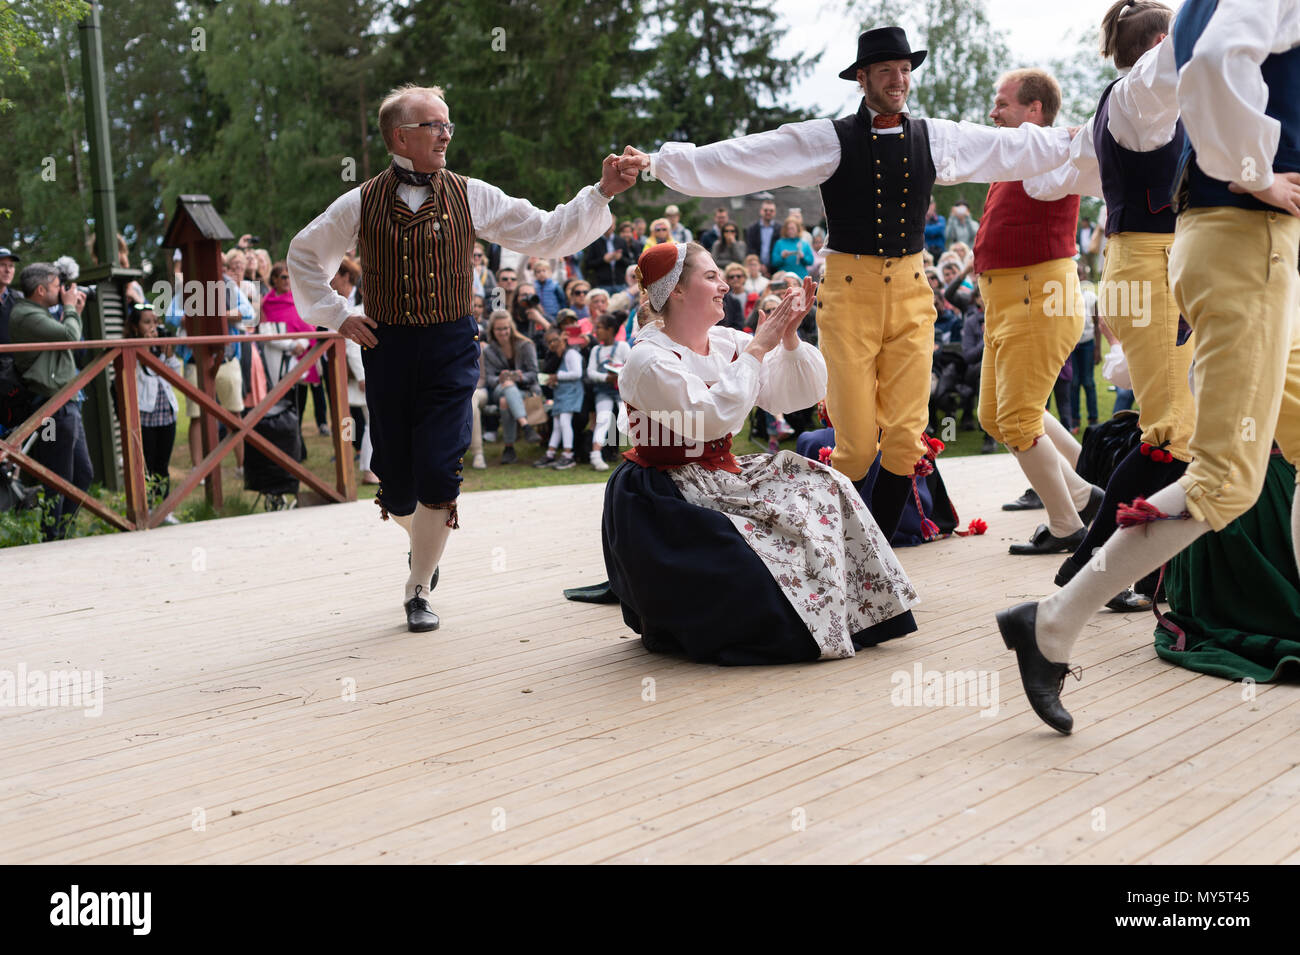 Stockholm, Sweden, June 6, 2018. Sweden's National Day celebration at Skansen, Stockholm. Public holiday in Sweden and traditional Swedish National Day June 6 celebration at the world´s oldest  open-air museum - Skansen. Credit: Barbro Bergfeldt/Alamy Live NewsStock Photo